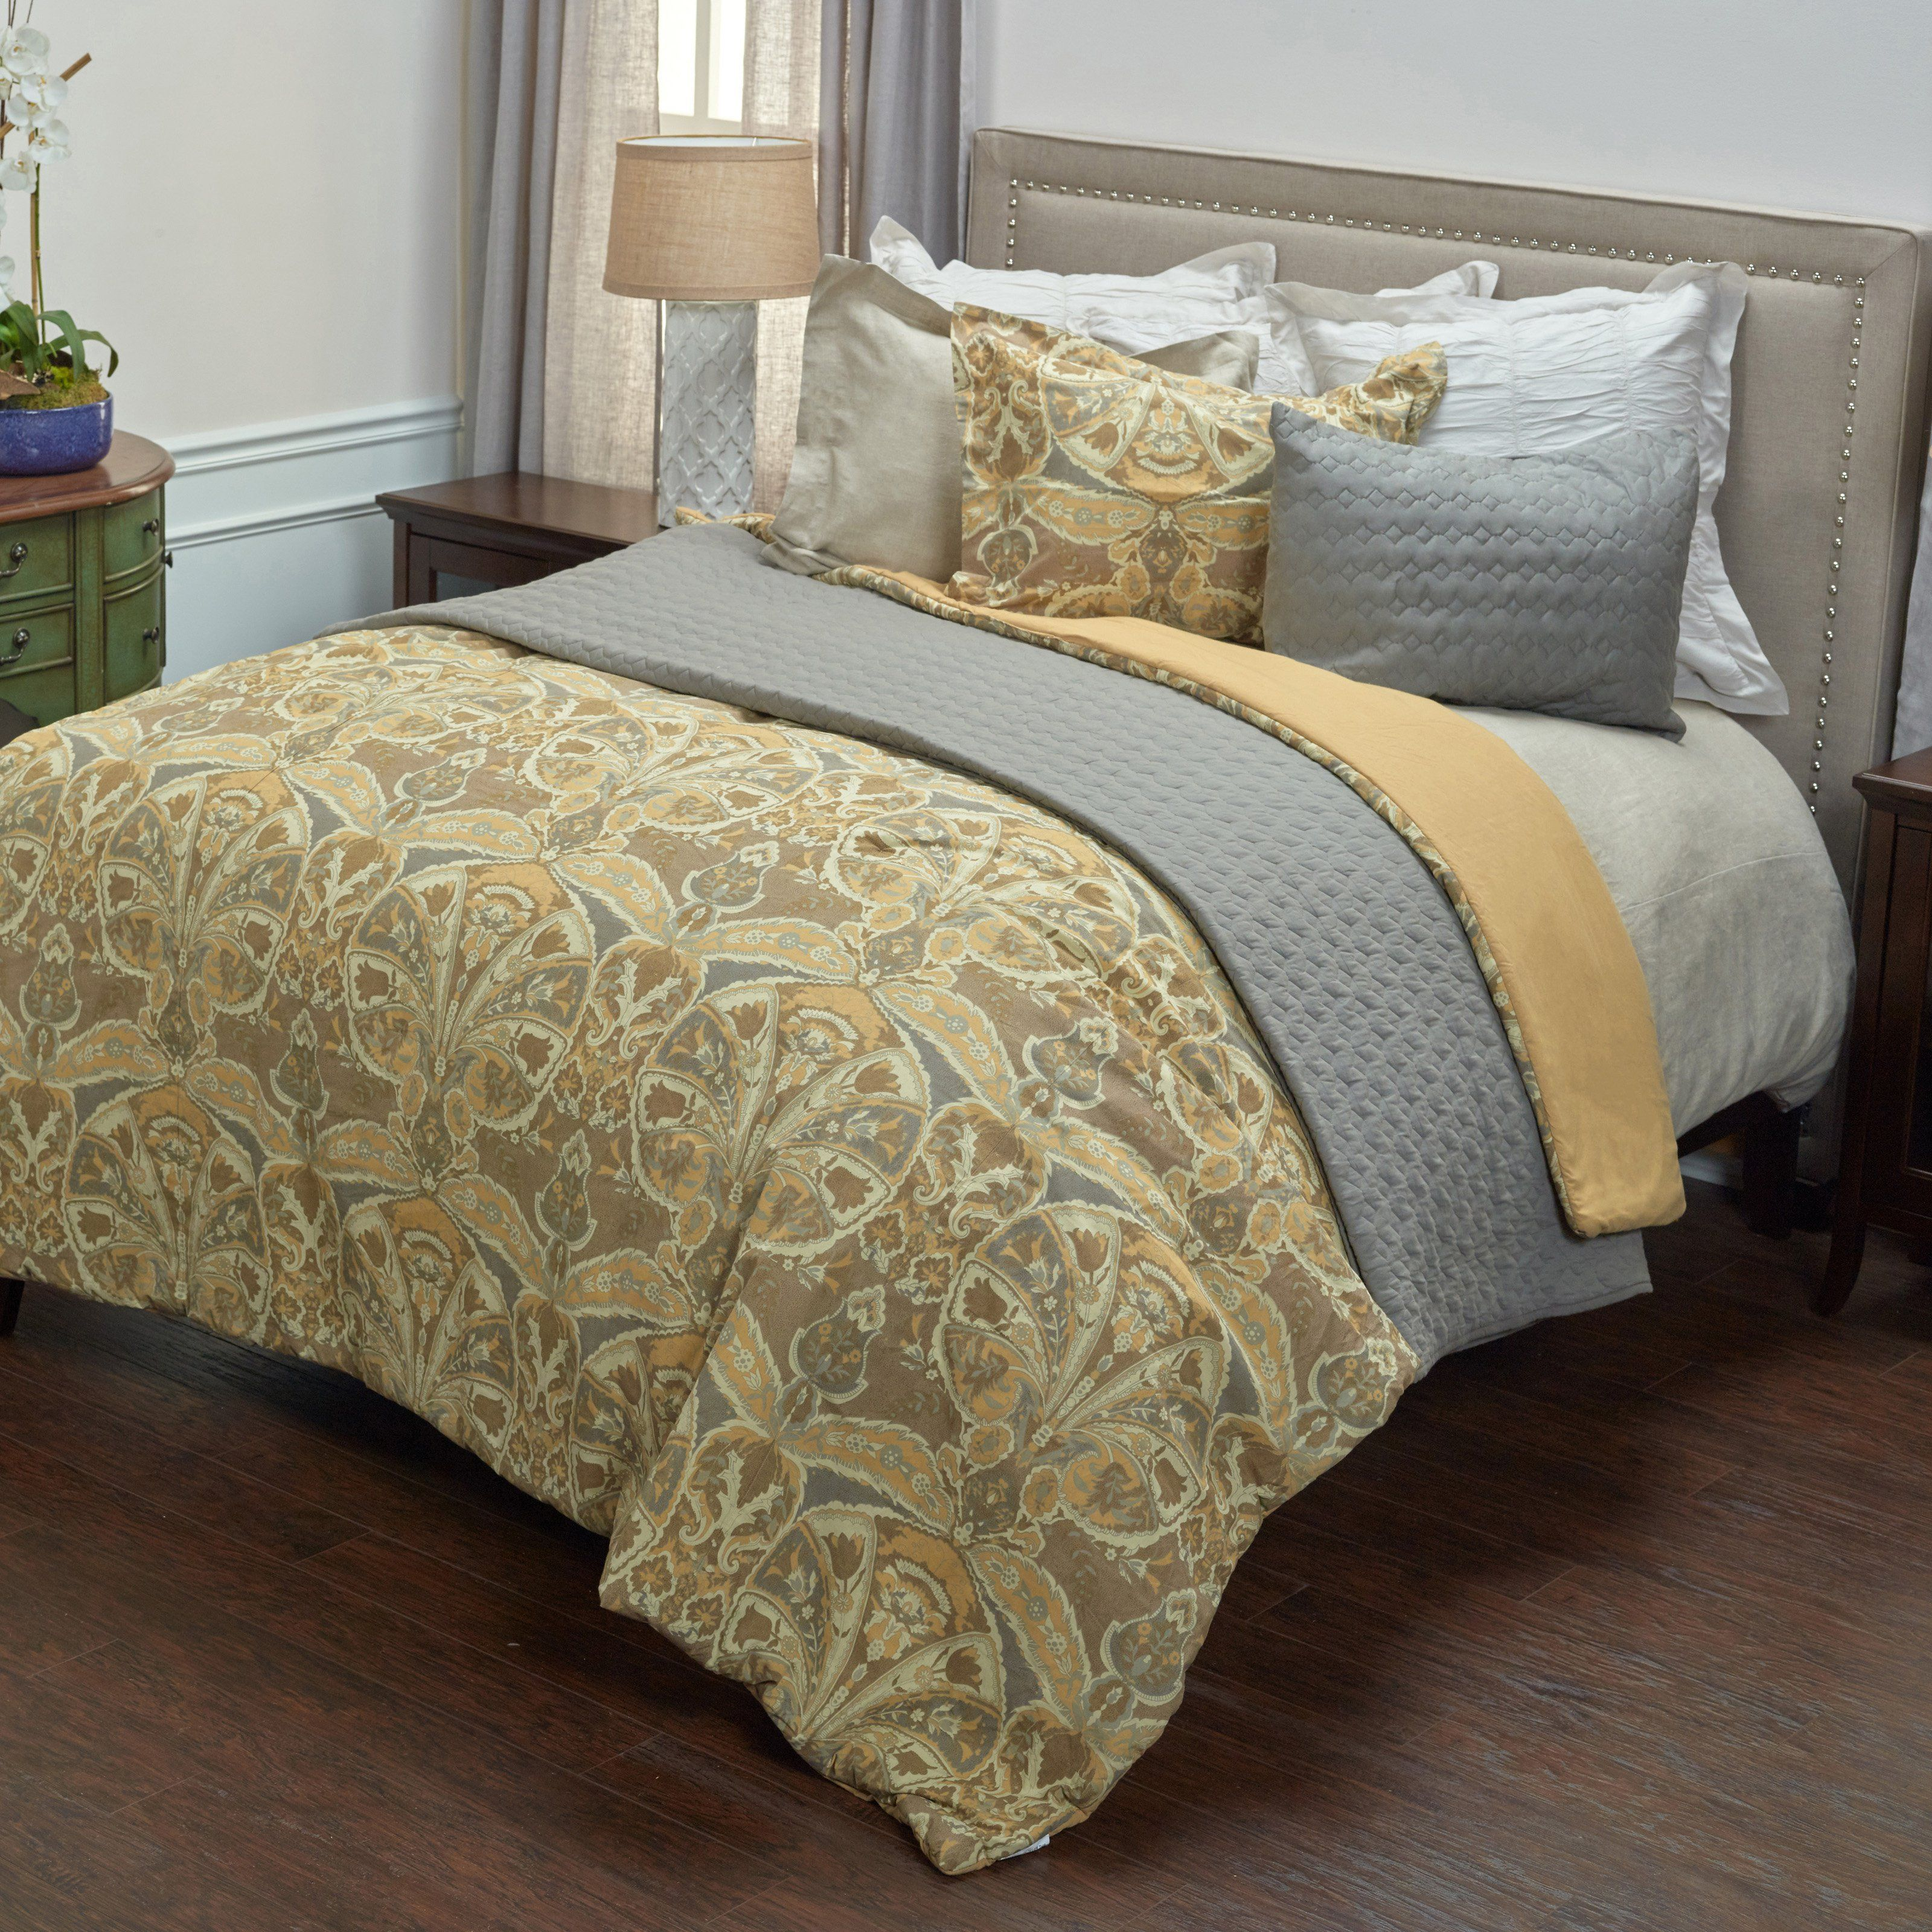 Rosmond Heights 3 Piece Bedding Set by Rizzy Home - CFSBT1807GLGY1692